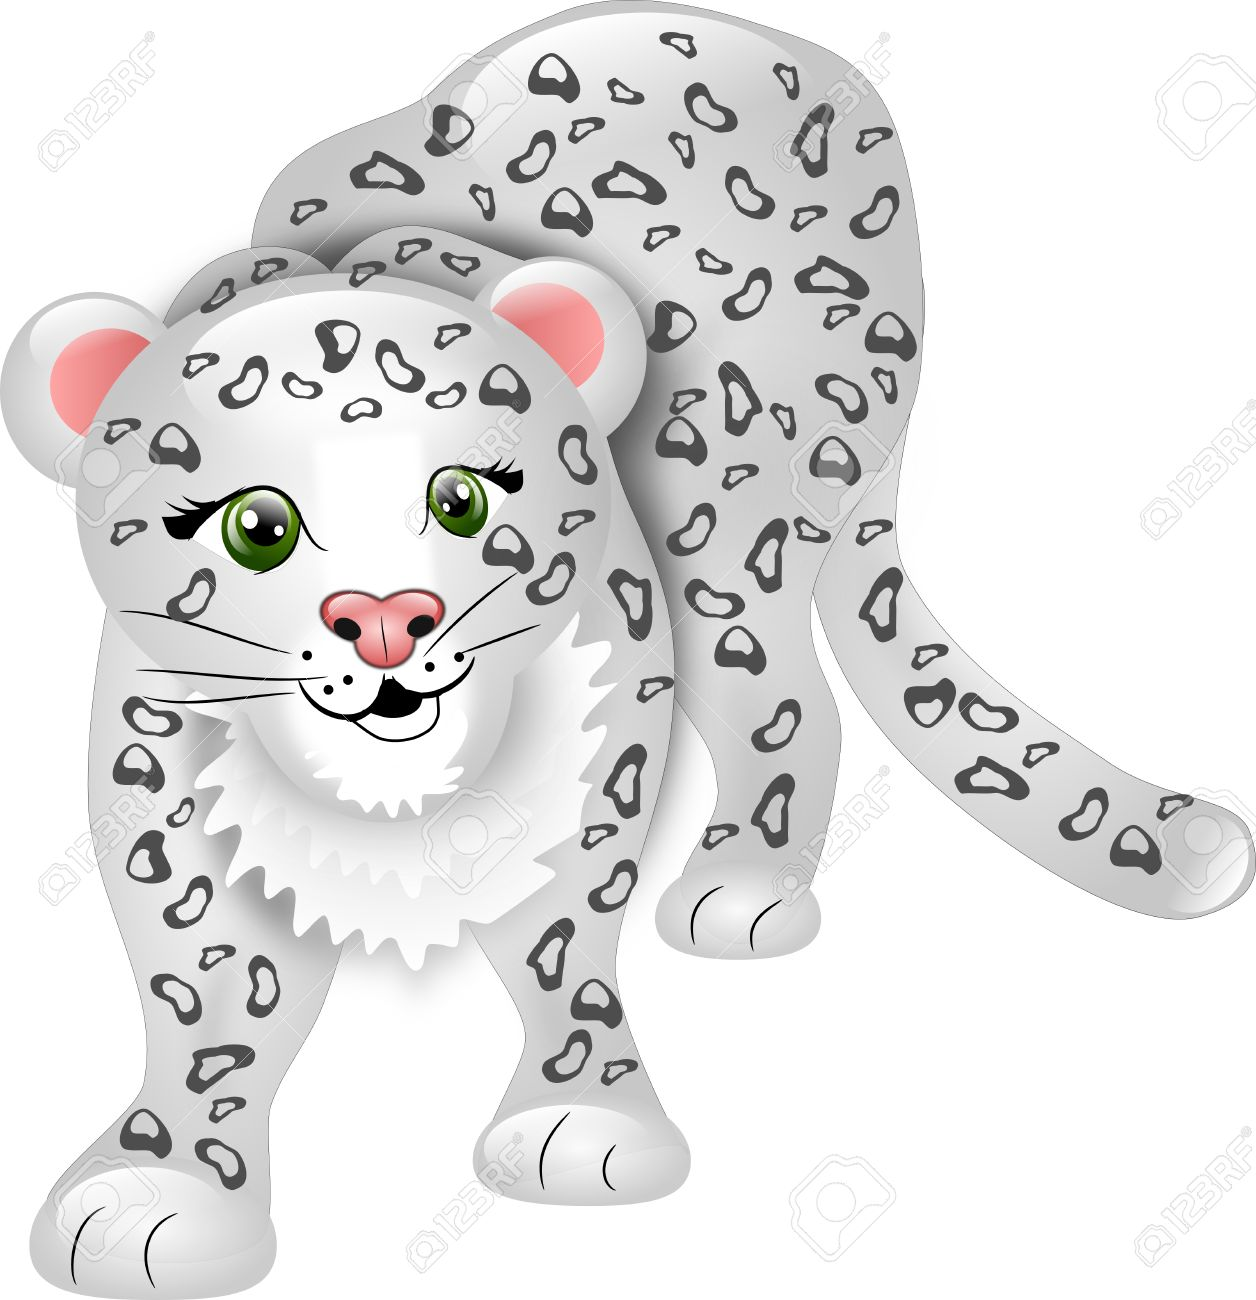 snow leopard: Cartoon snow le - Snow Leopard Clipart